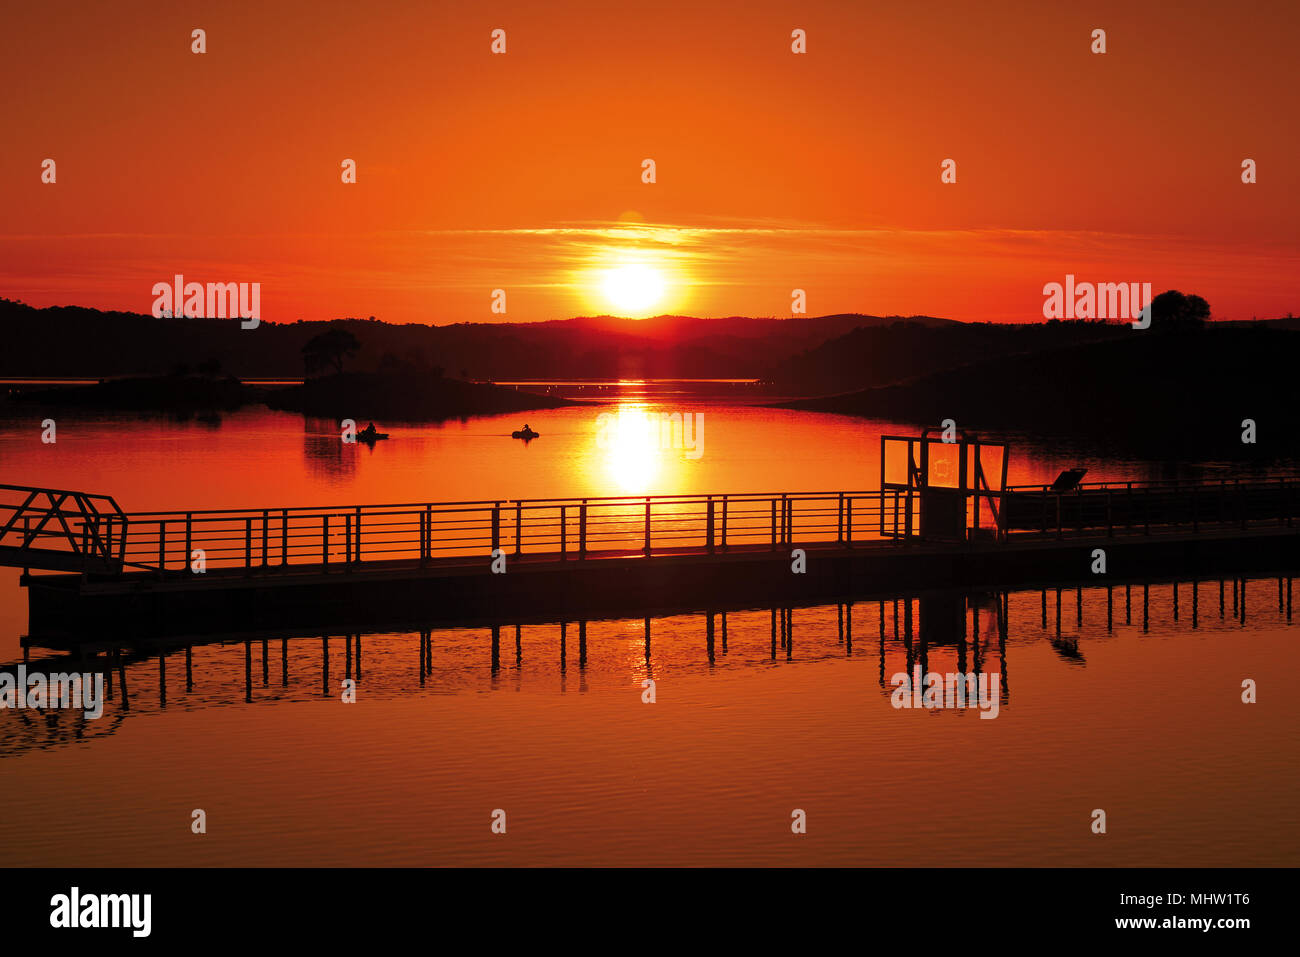 Scenic sunset  with orange horizon over lake with boat launch - Stock Image